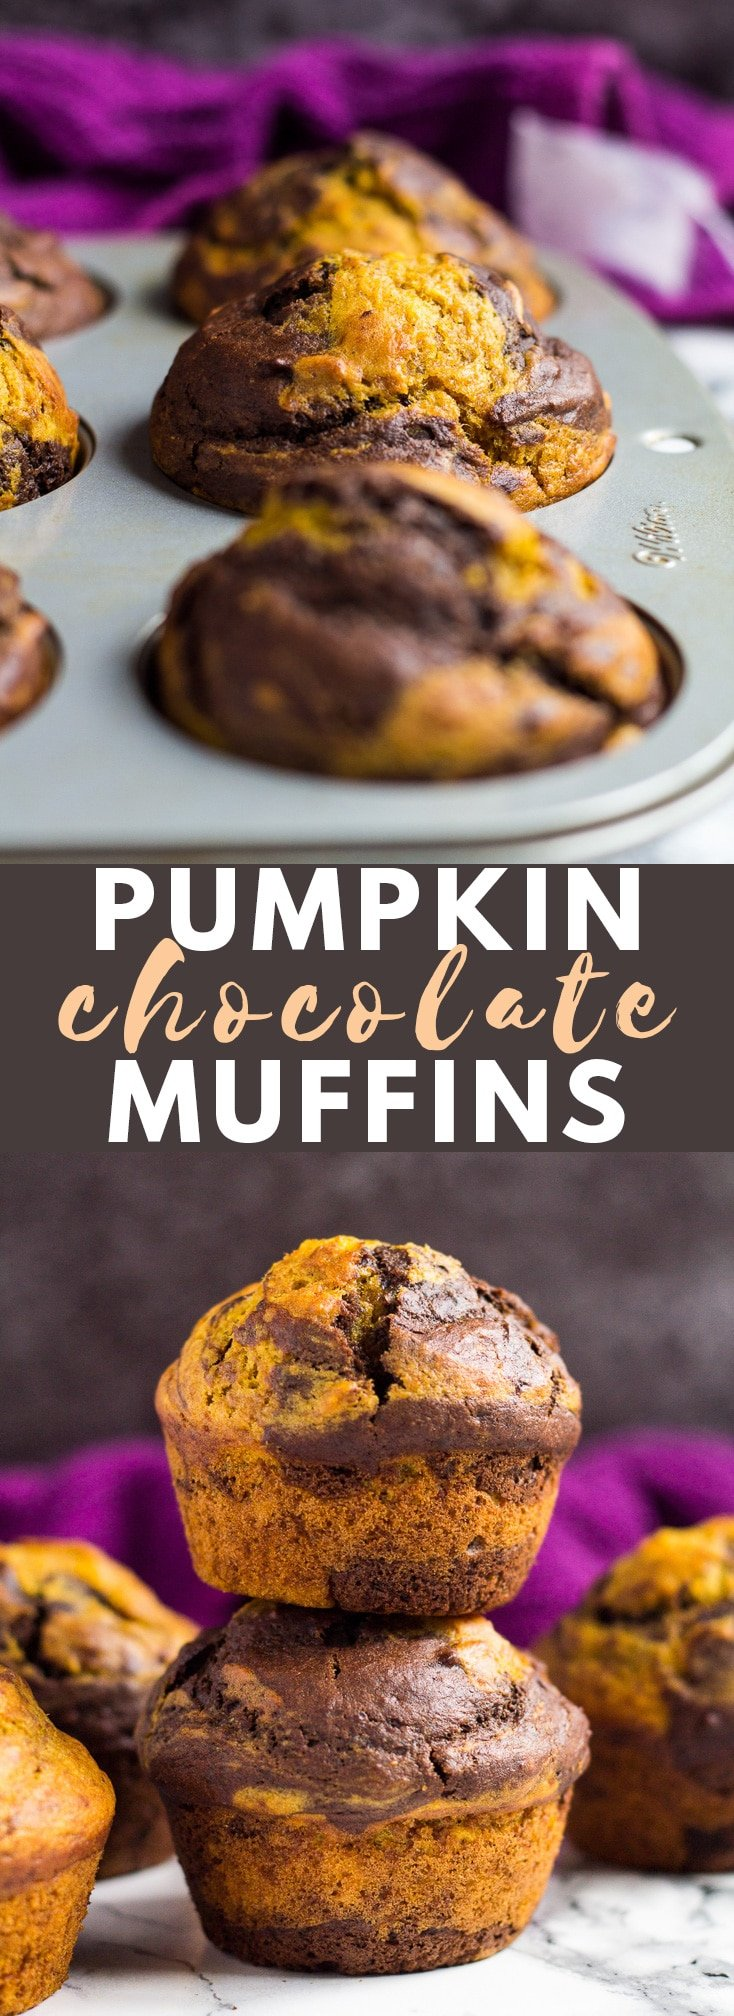 Pumpkin Chocolate Muffins - These deliciously moist pumpkin muffins are swirled with chocolate and perfectly spiced. Enjoy with your morning tea or coffee this autumn! #pumpkin #chocolate #muffins #recipe